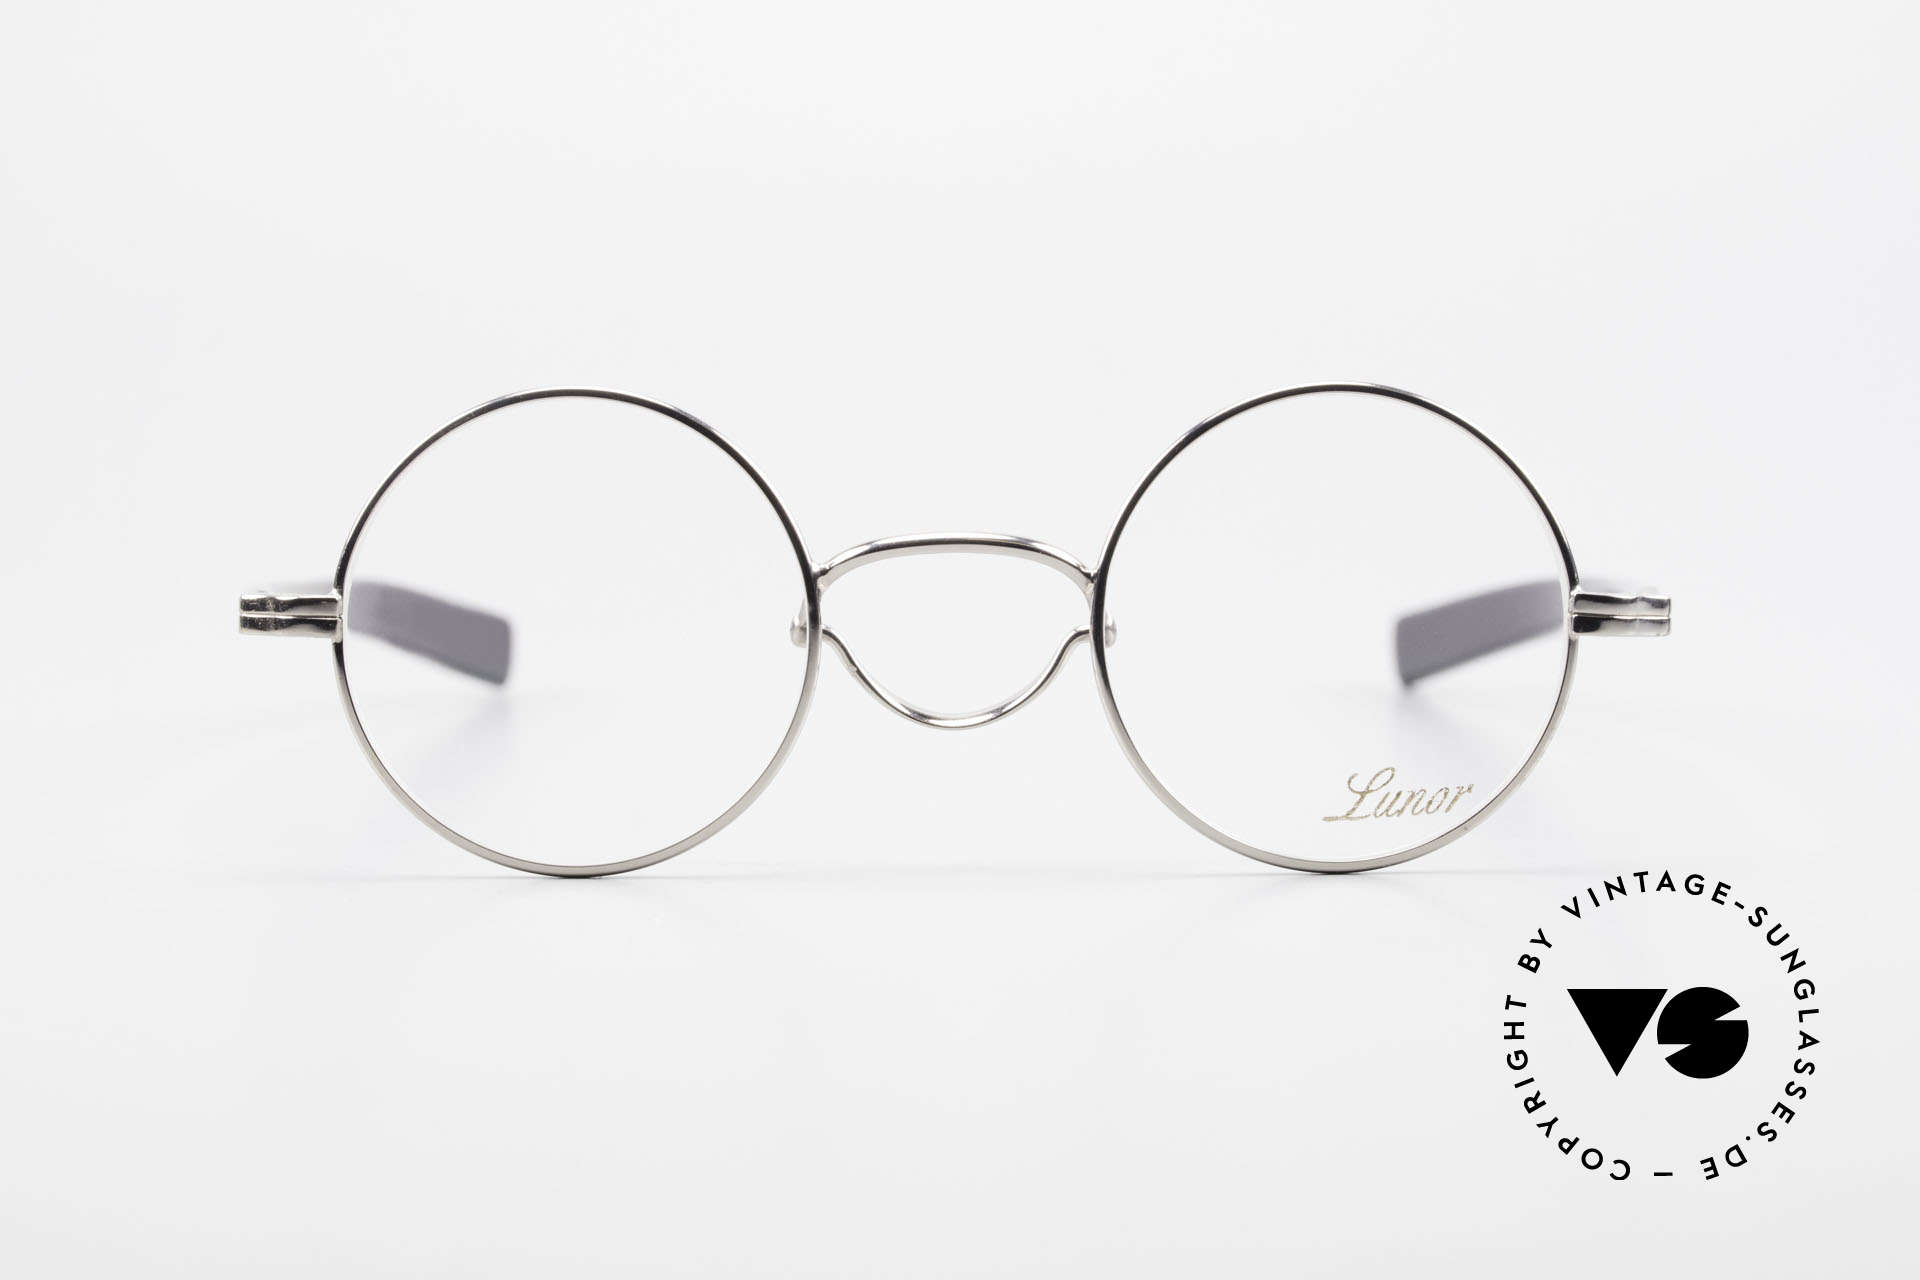 Lunor Swing A 31 Round Swing Bridge Vintage Glasses, Size: extra small, Made for Men and Women